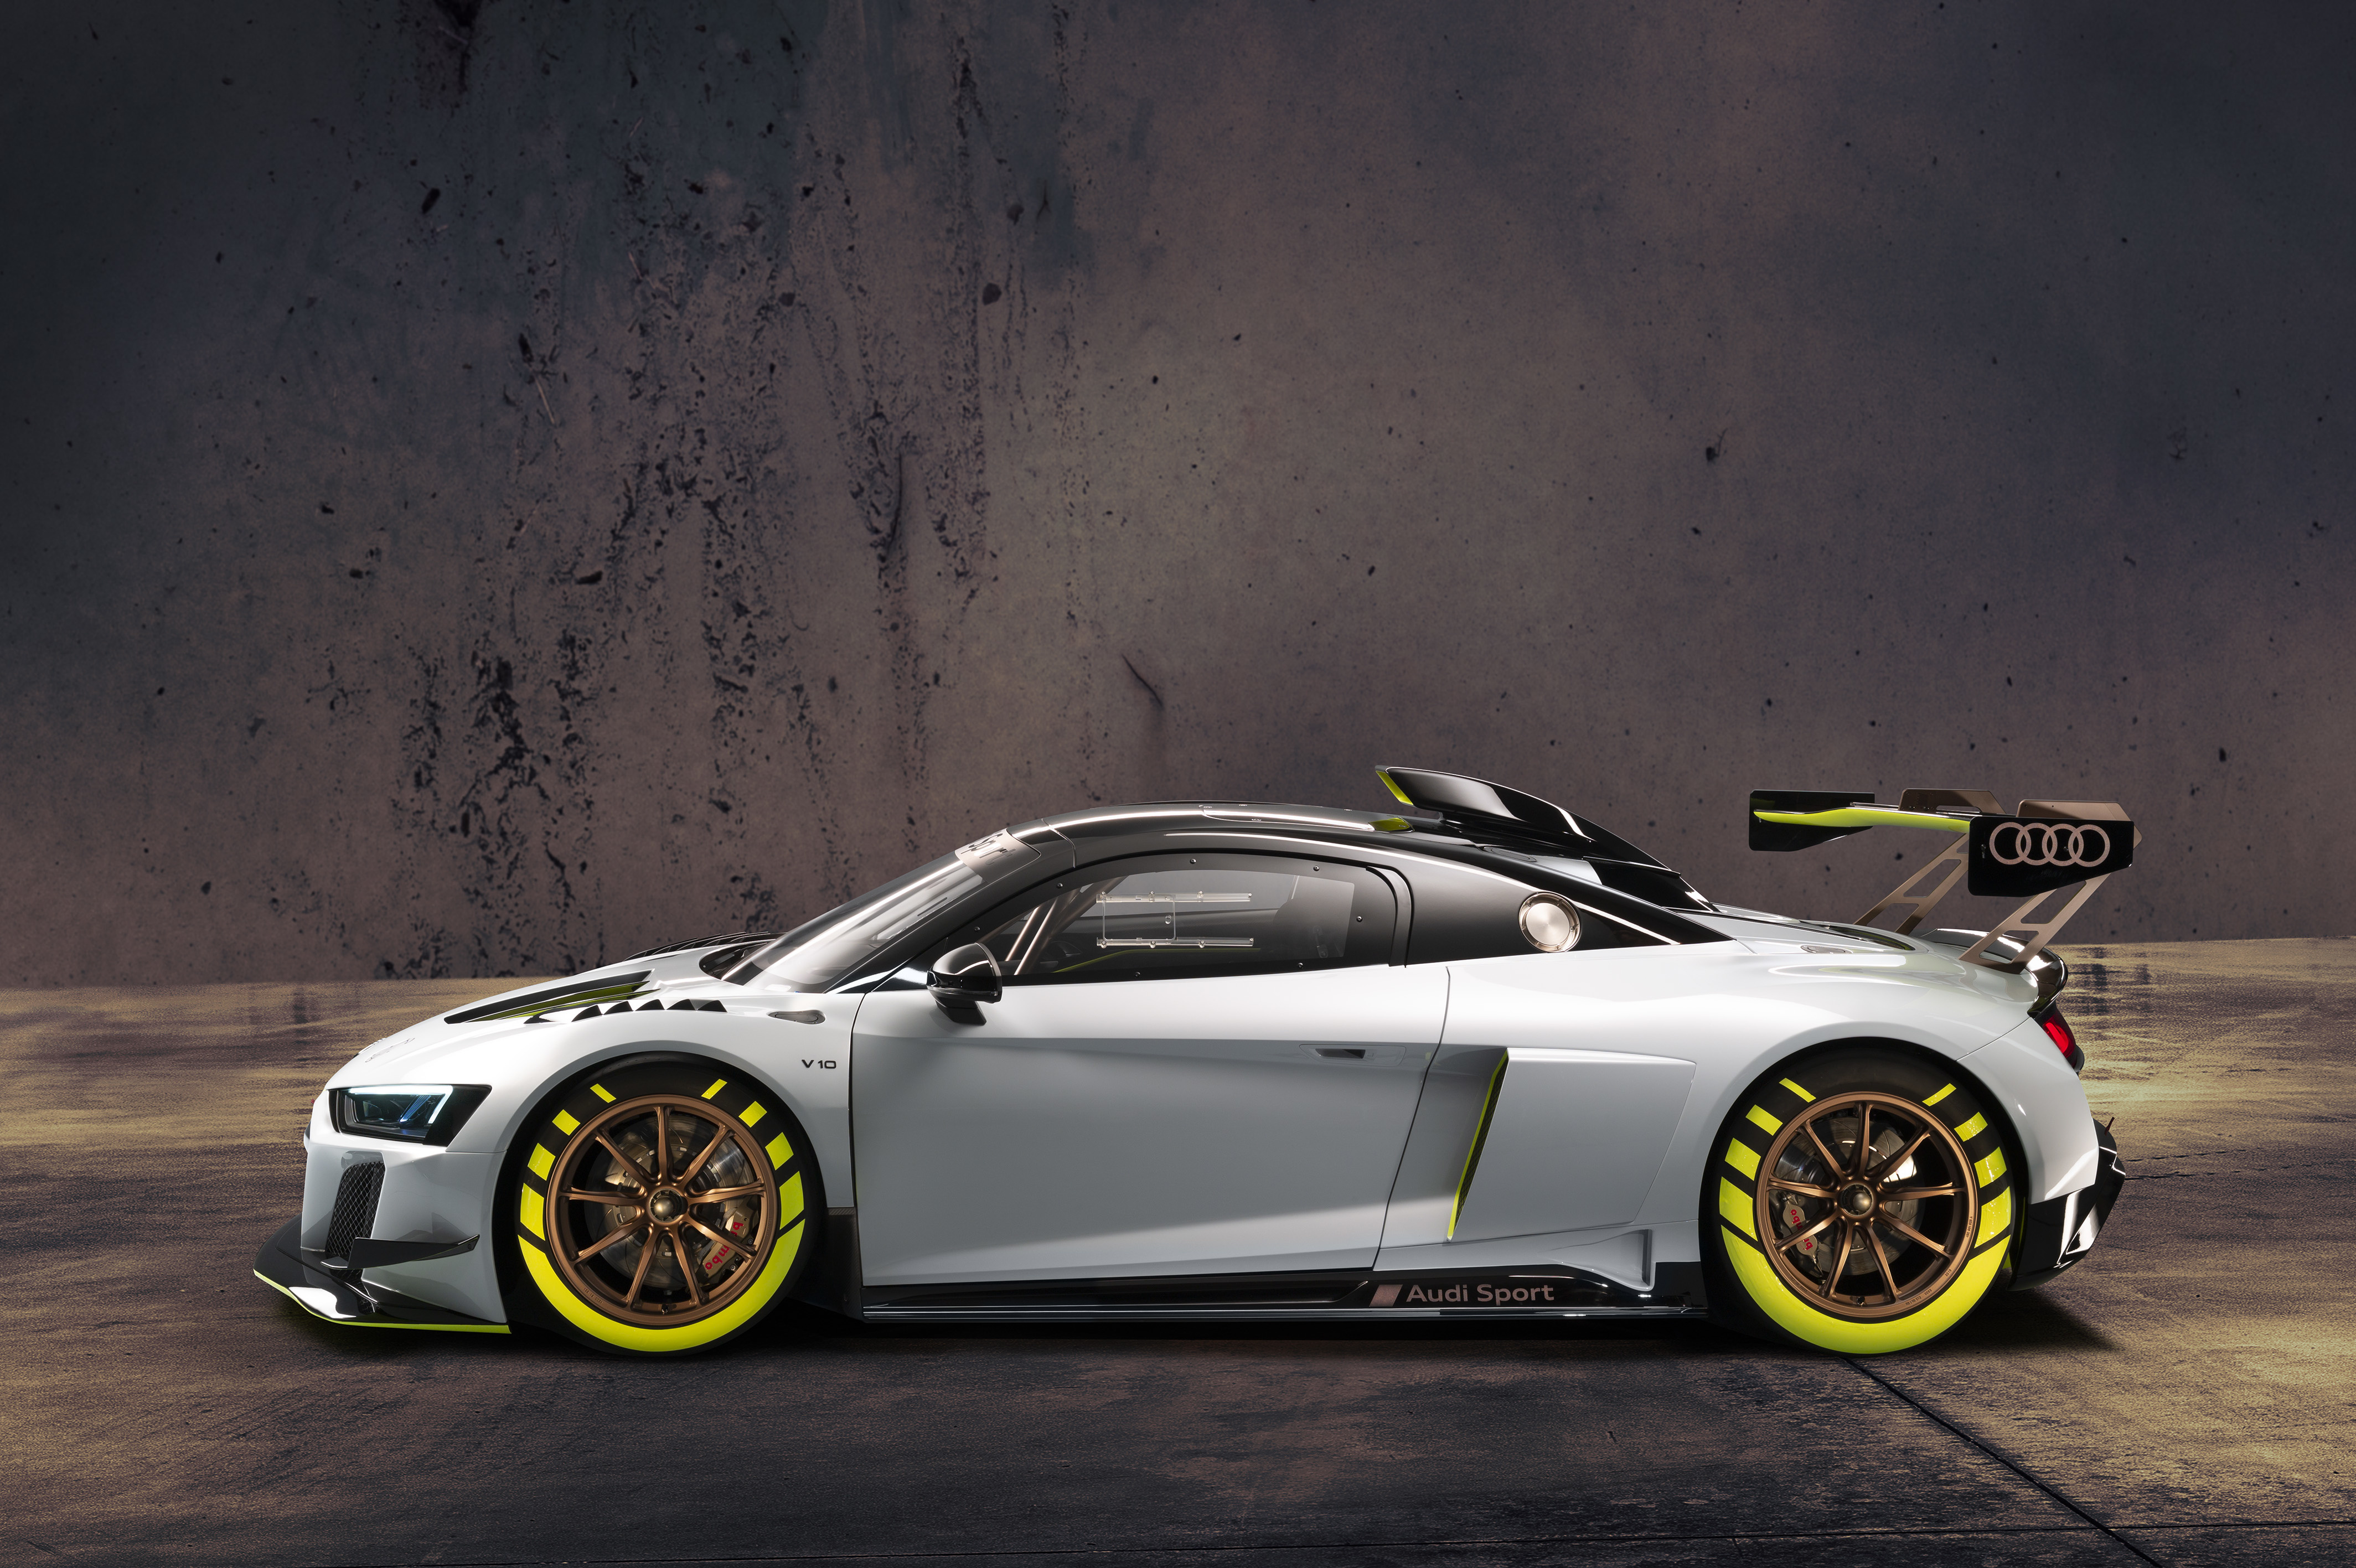 The 2020 Audi R8 Lms Gt2 Is The R8 We Deserve For The Road But Can T